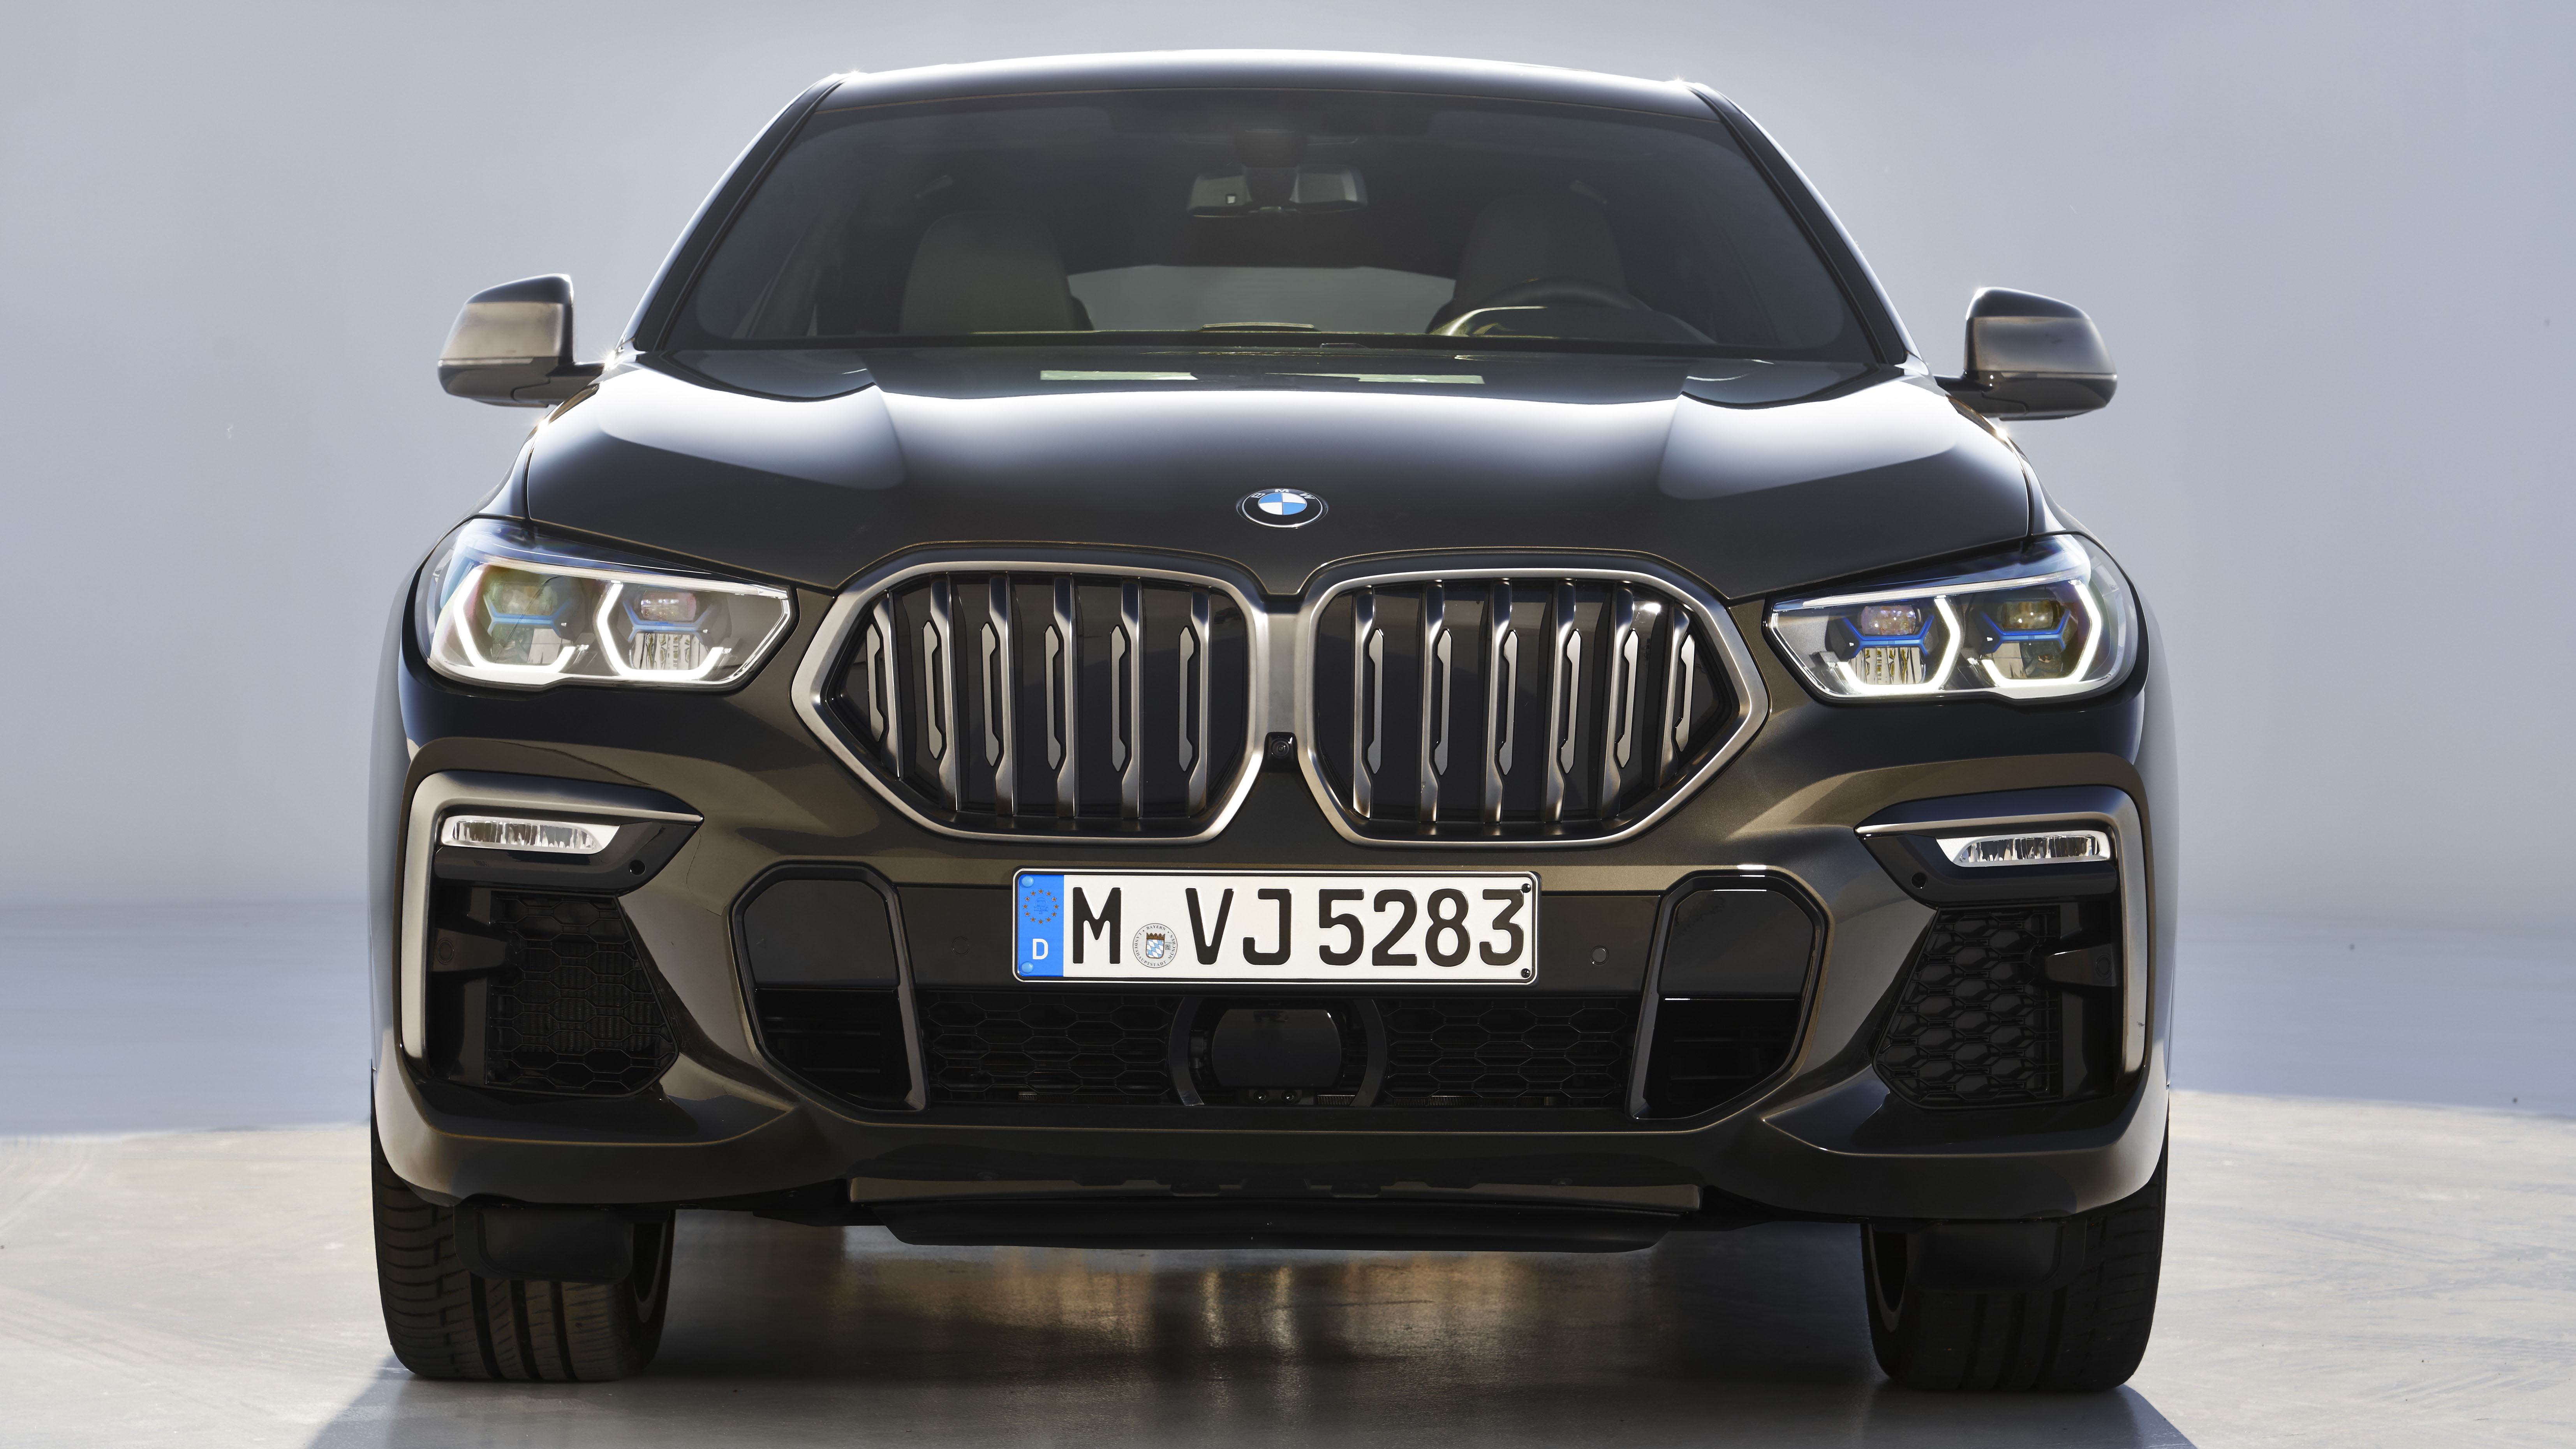 2020 BMW X6 revealed, more distinct from X5 sibling | Autoblog